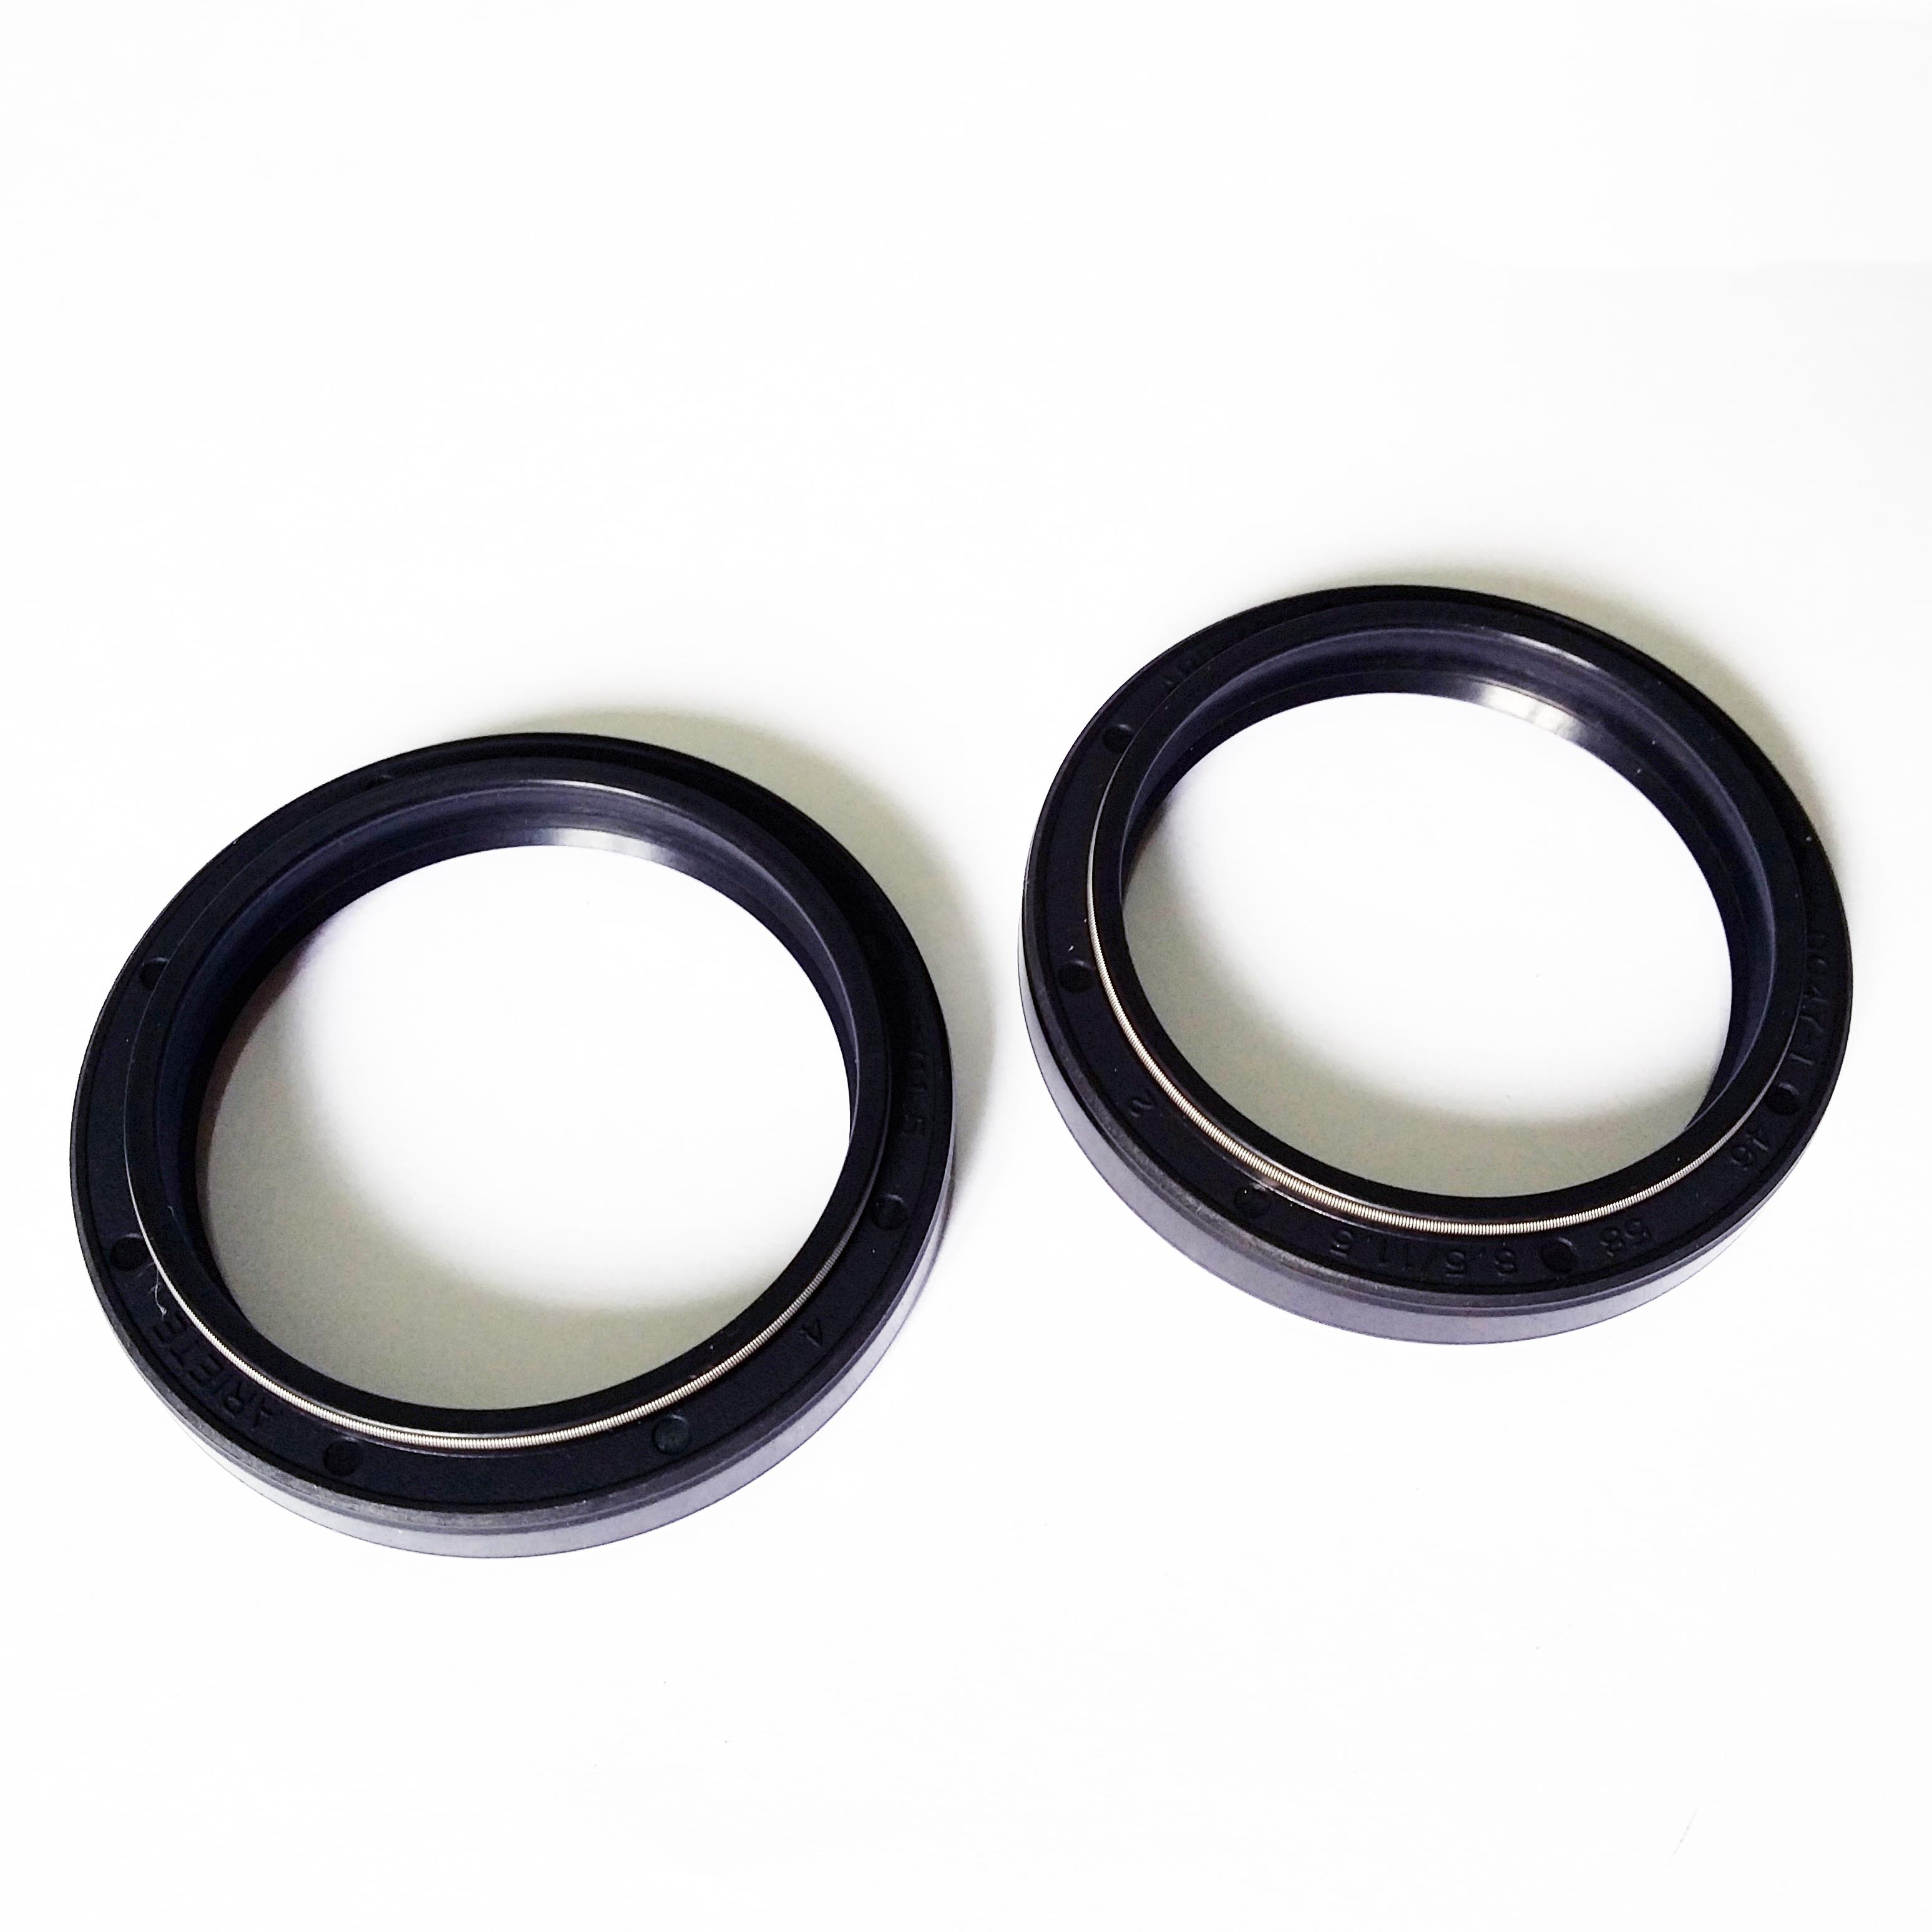 K-Tech Honda CB1300   2008-2016 NOK Front Fork Oil Seals 43x54x11mm